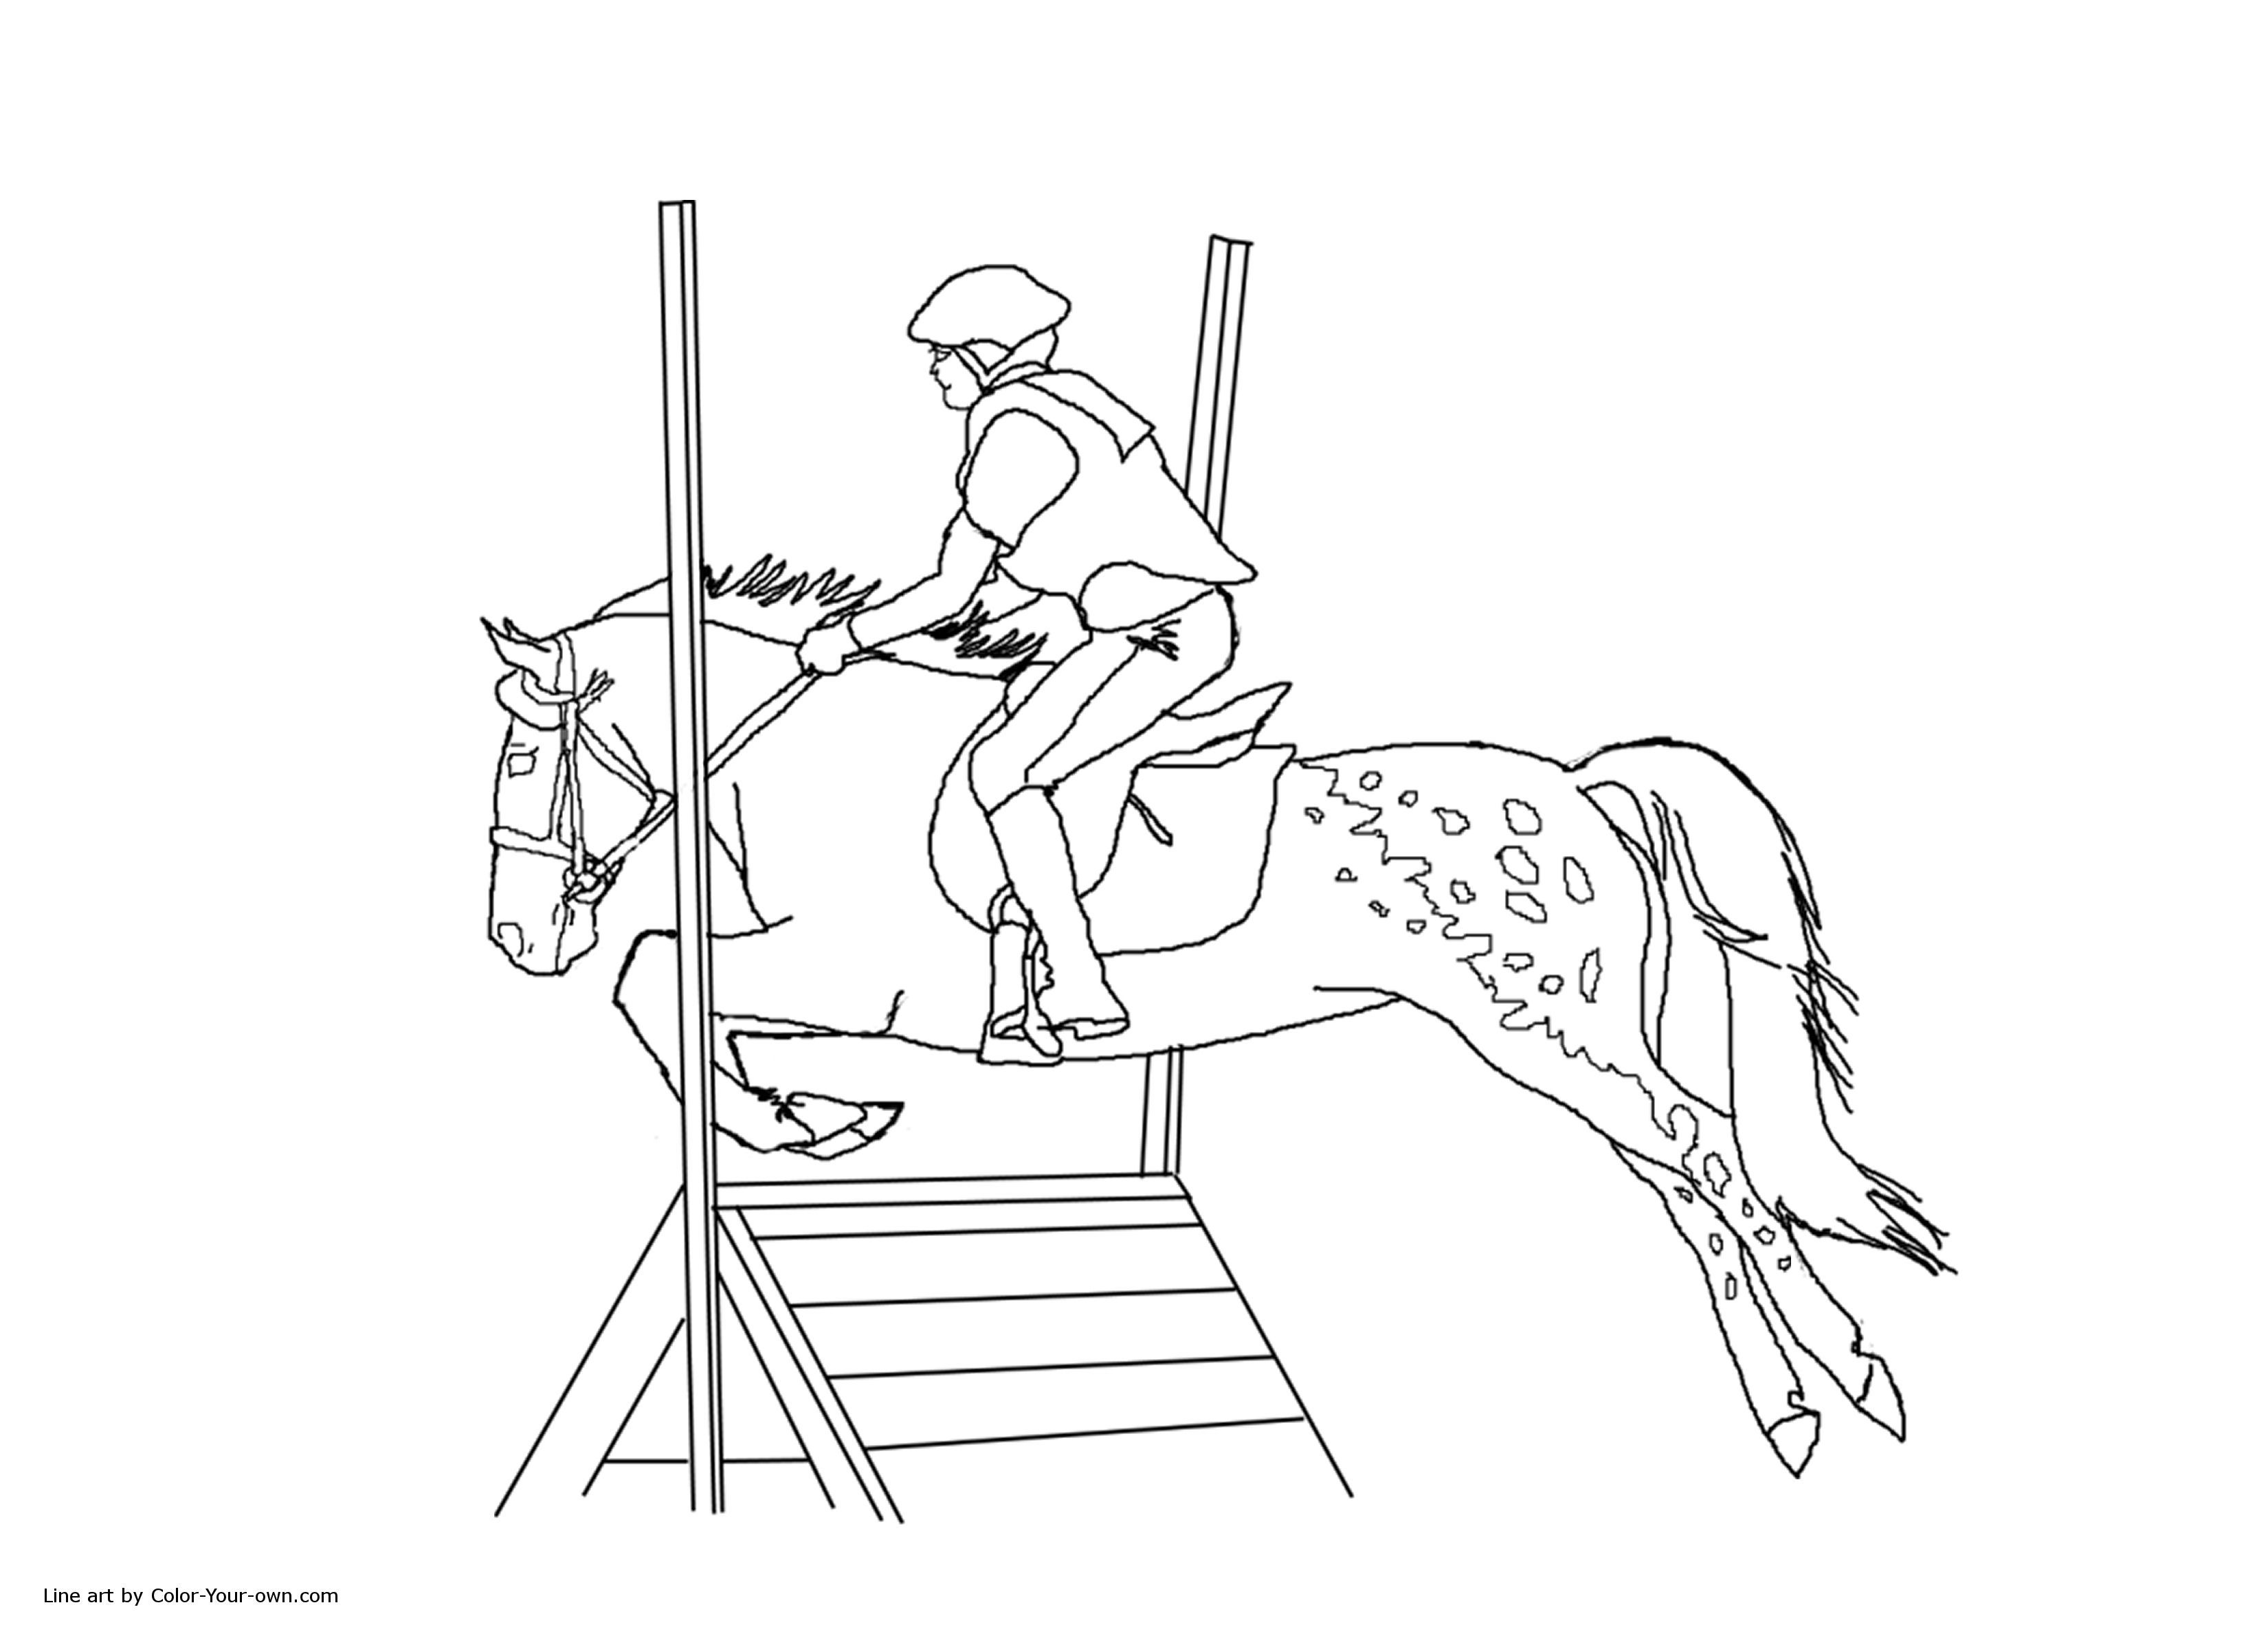 horse show jumping coloring pages 4 jumping horse printable coloring sheet for kids horse jumping coloring show pages